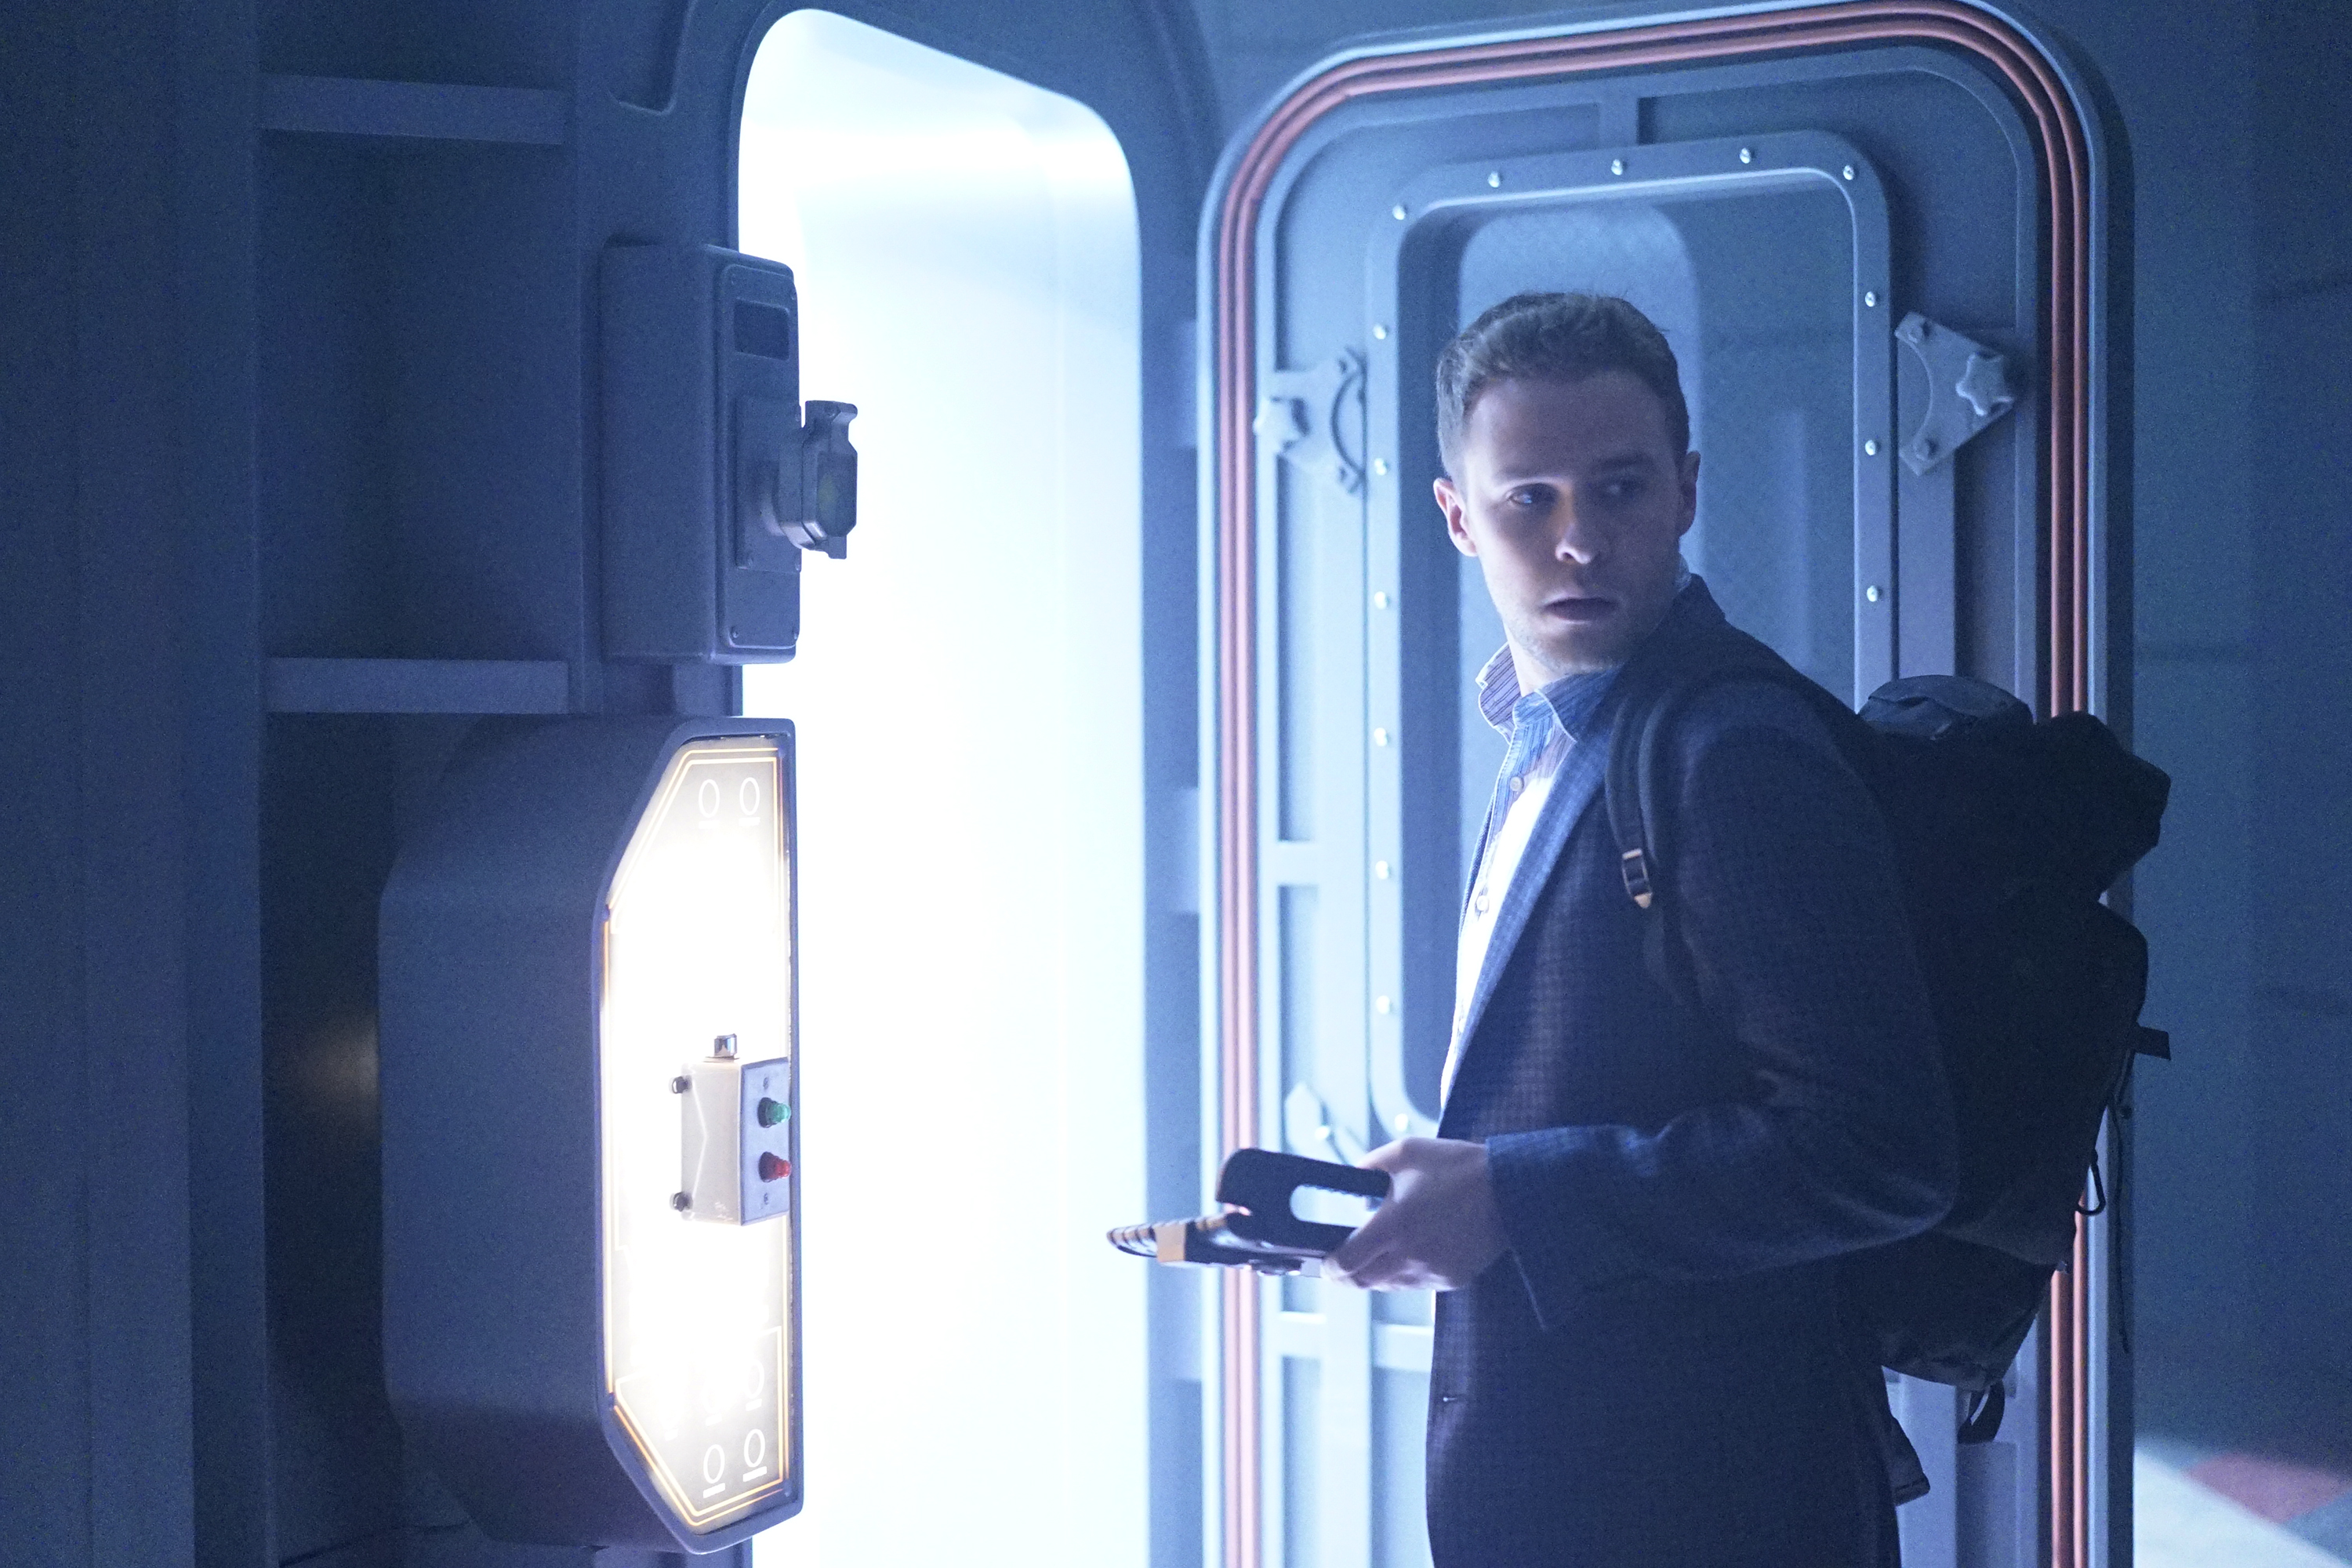 agents of shield the darkhold 2016 images